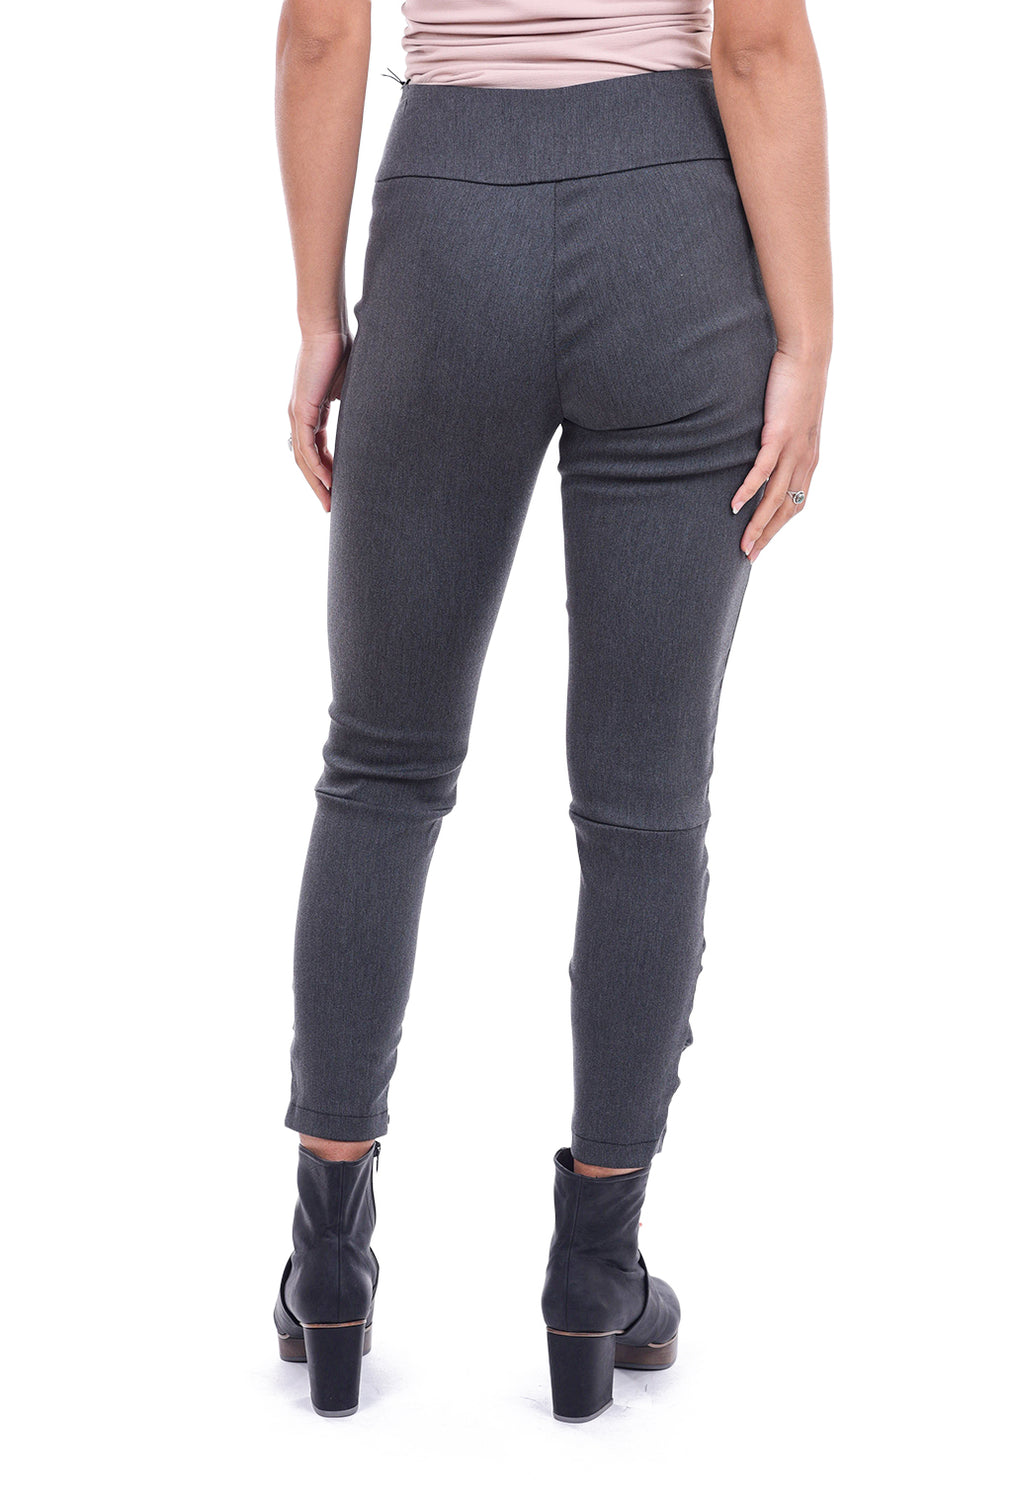 Porto Peddler Pants, Heather Gray